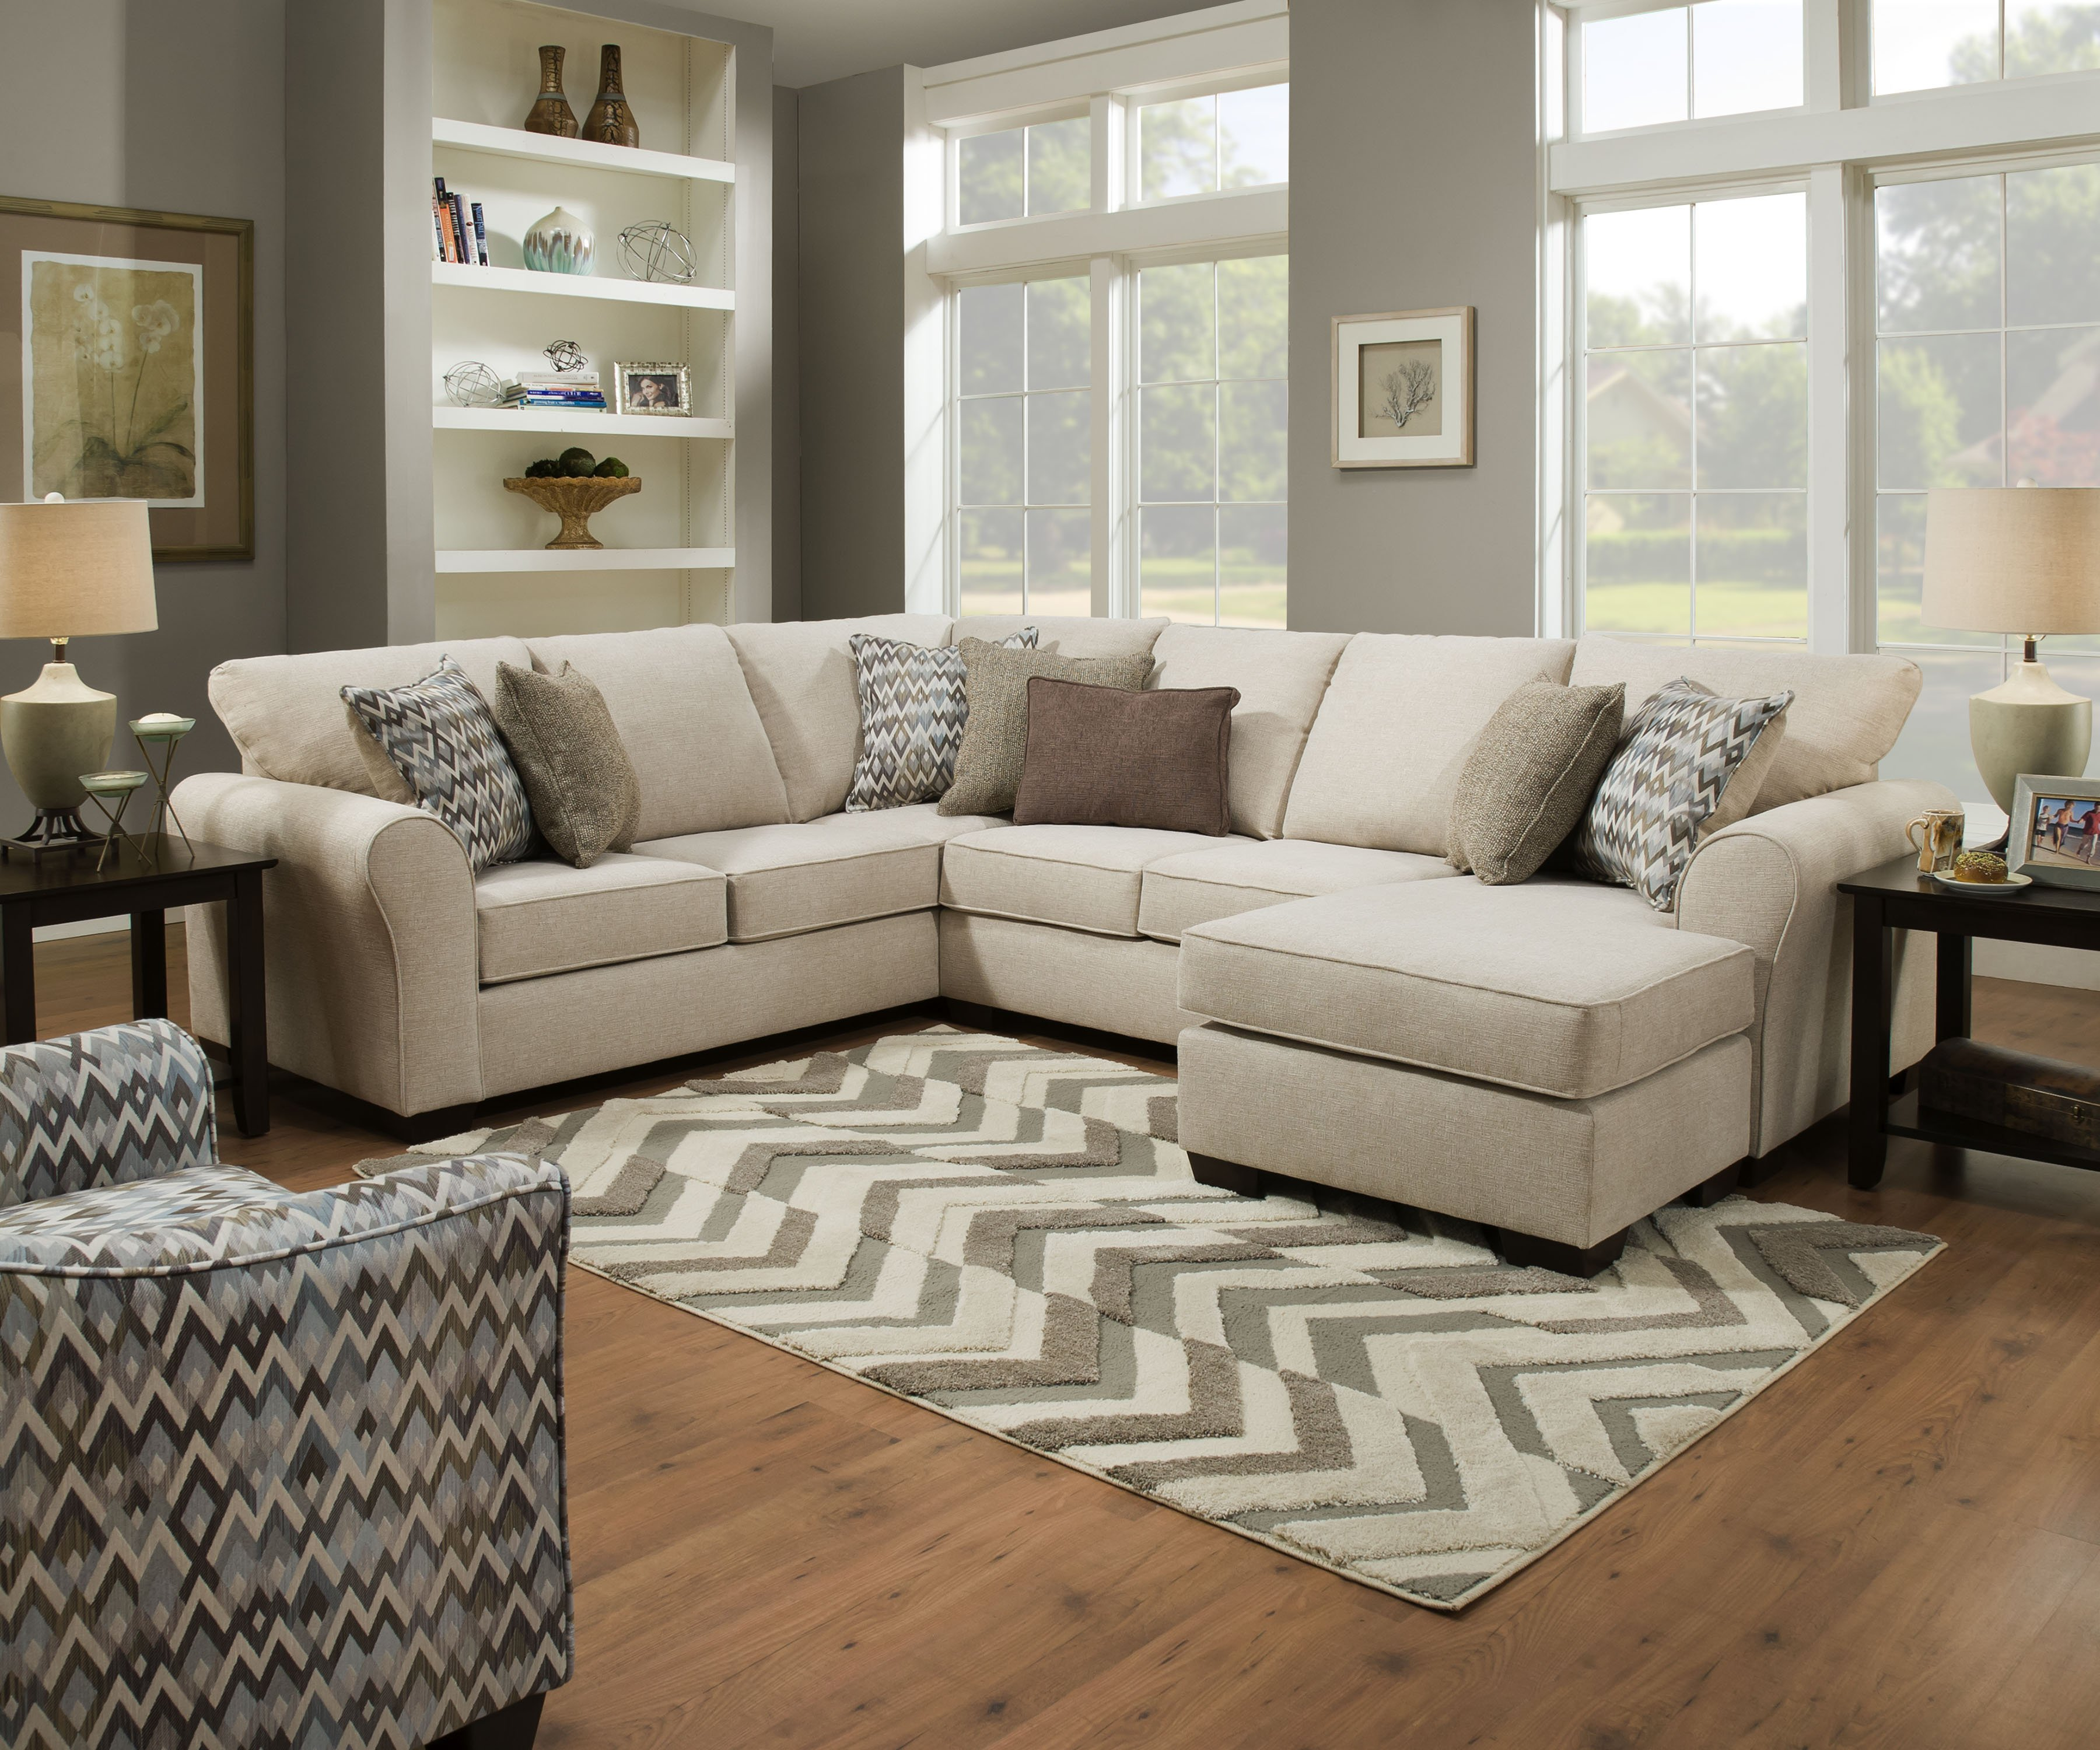 1657 Sectional in Boston Linen- with Reversible Chaise $1099